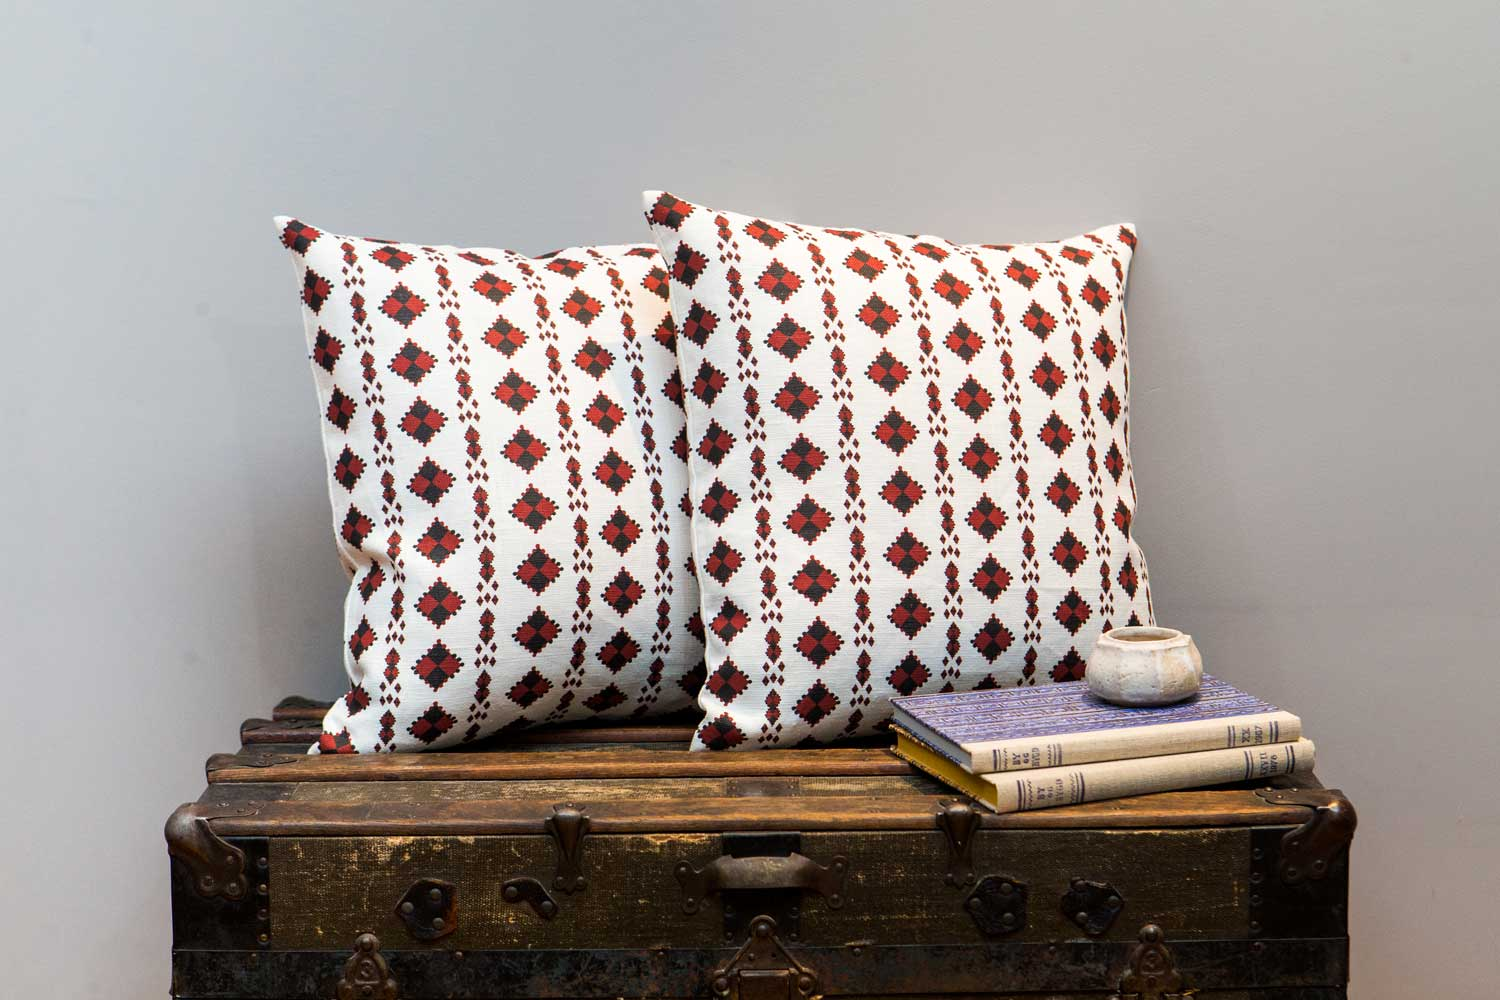 Abbot-Atlas-karpathos-diamond-red-fabric-linen-printed-pillow-cushion-trunk.jpg